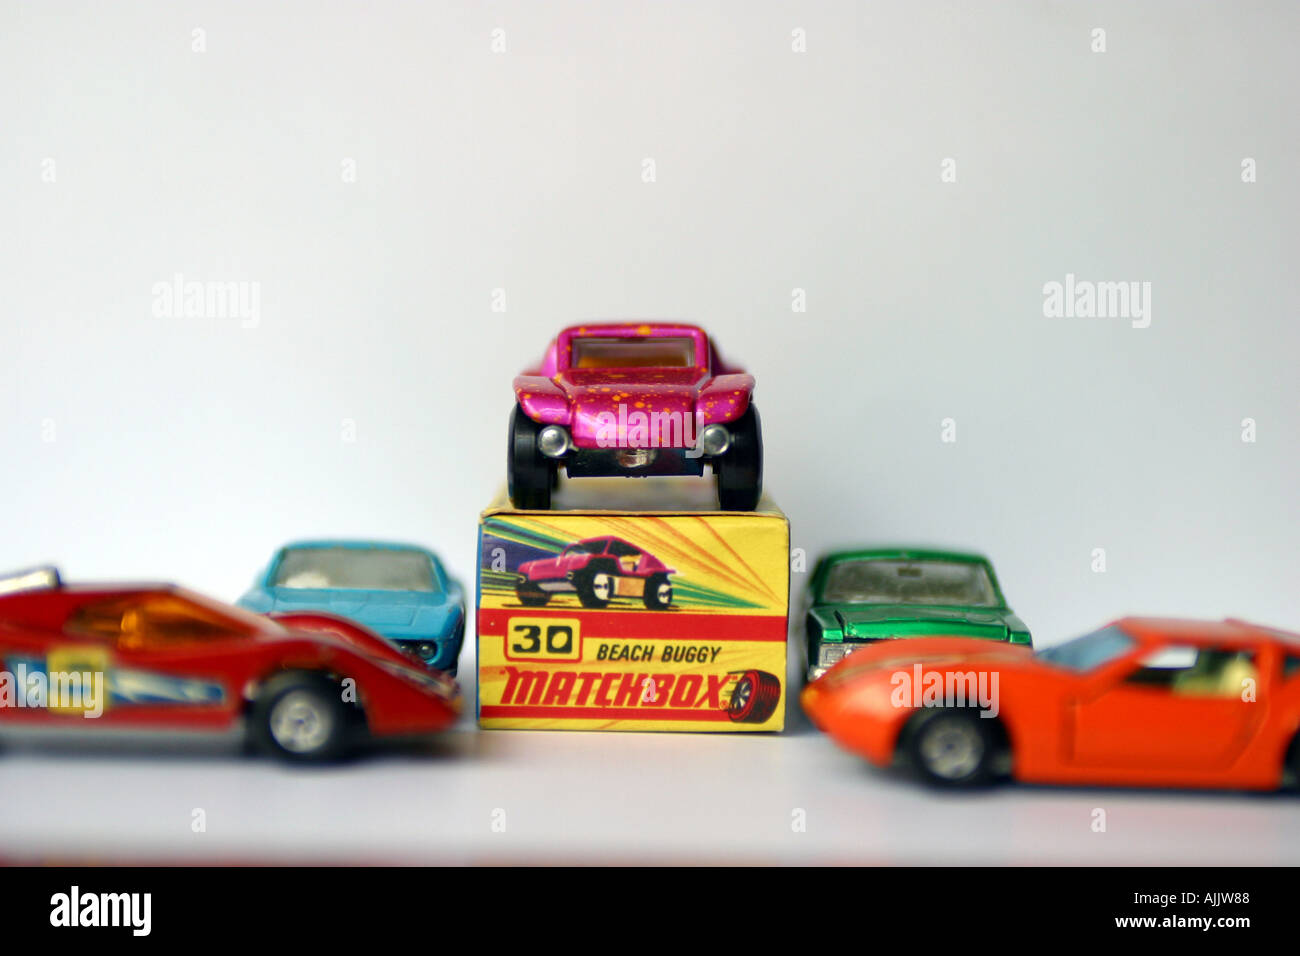 matchbox toy car with packaging Stock Photo